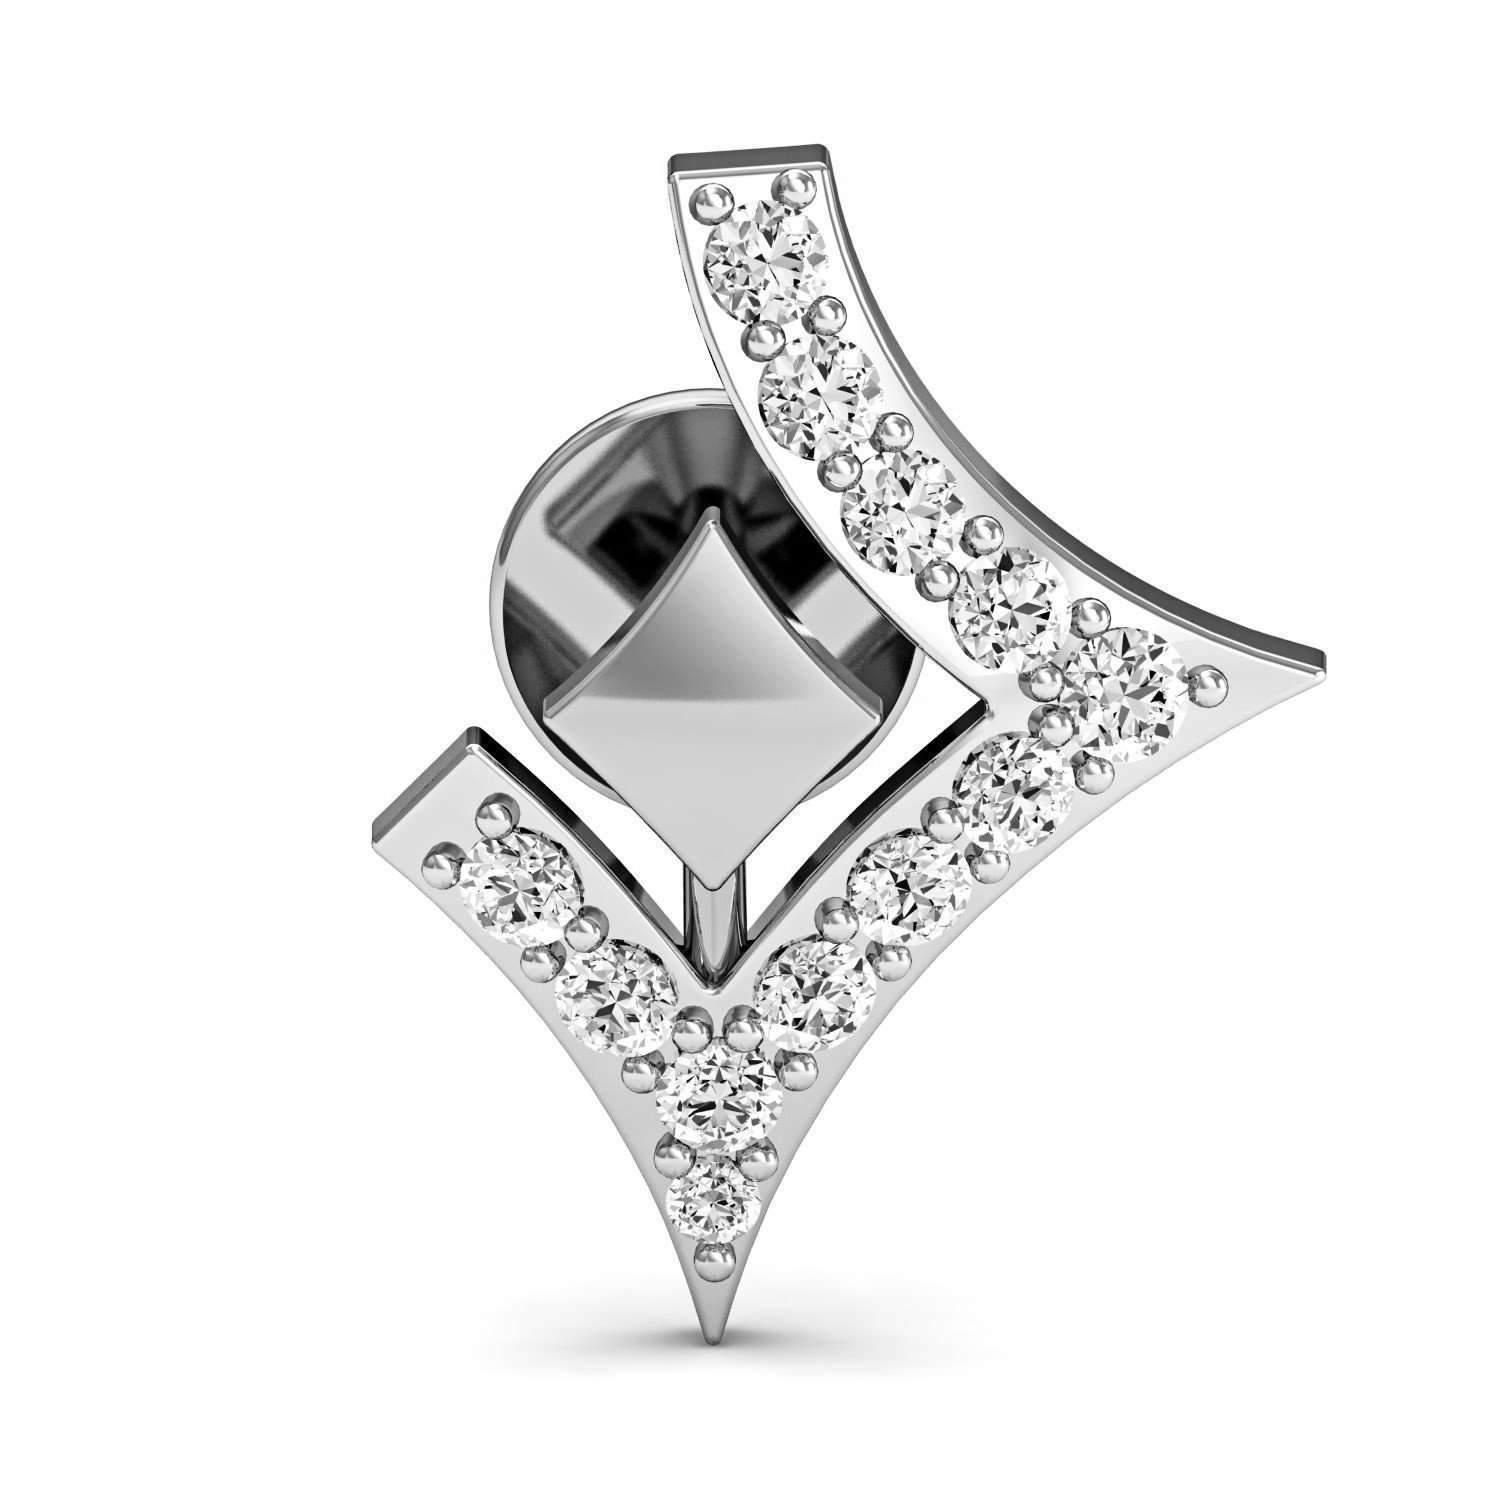 Diamoire Jewels Dignified Premium Diamond Earrings in White Gold i3IDy